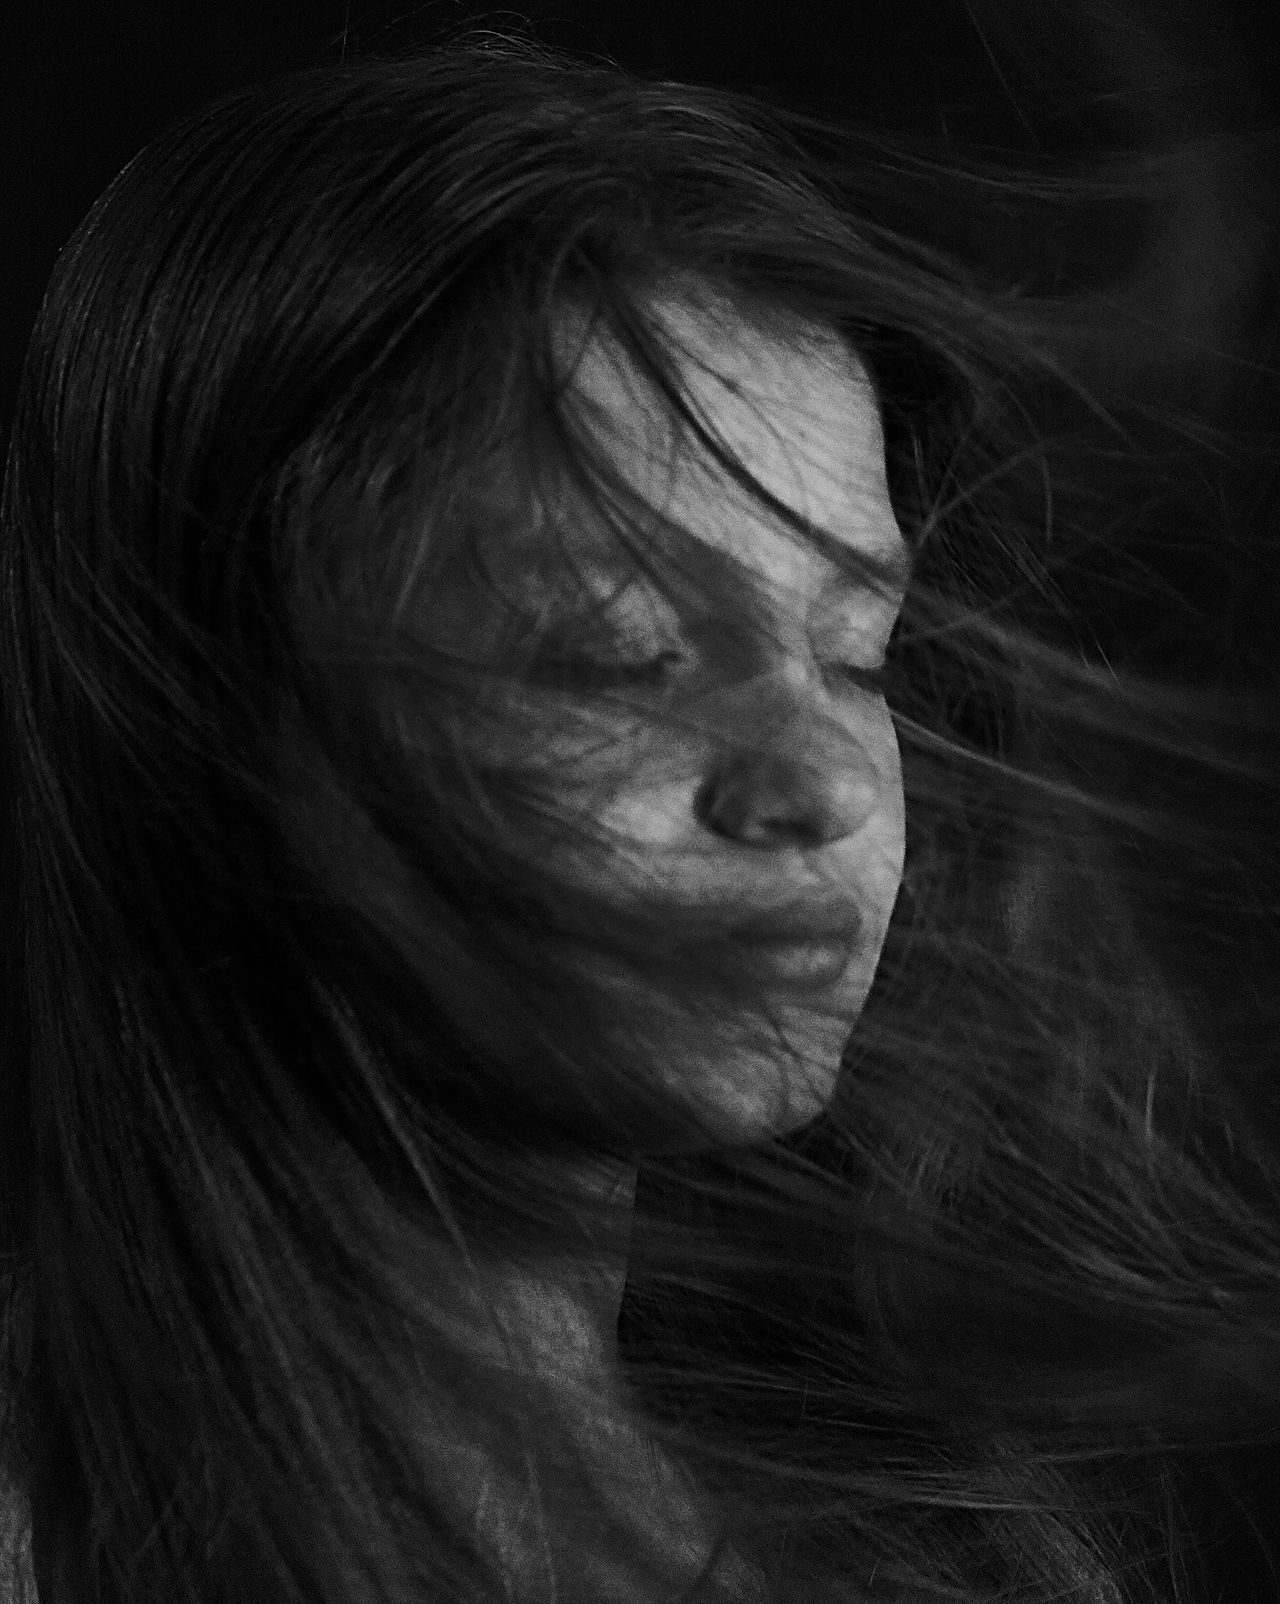 Russia Blackandwhite Black And White Black & White Black And White Photography Blackandwhite Photography Black&white Blackandwhitephotography Portrait One Person Eyes Closed  Young Adult Human Face